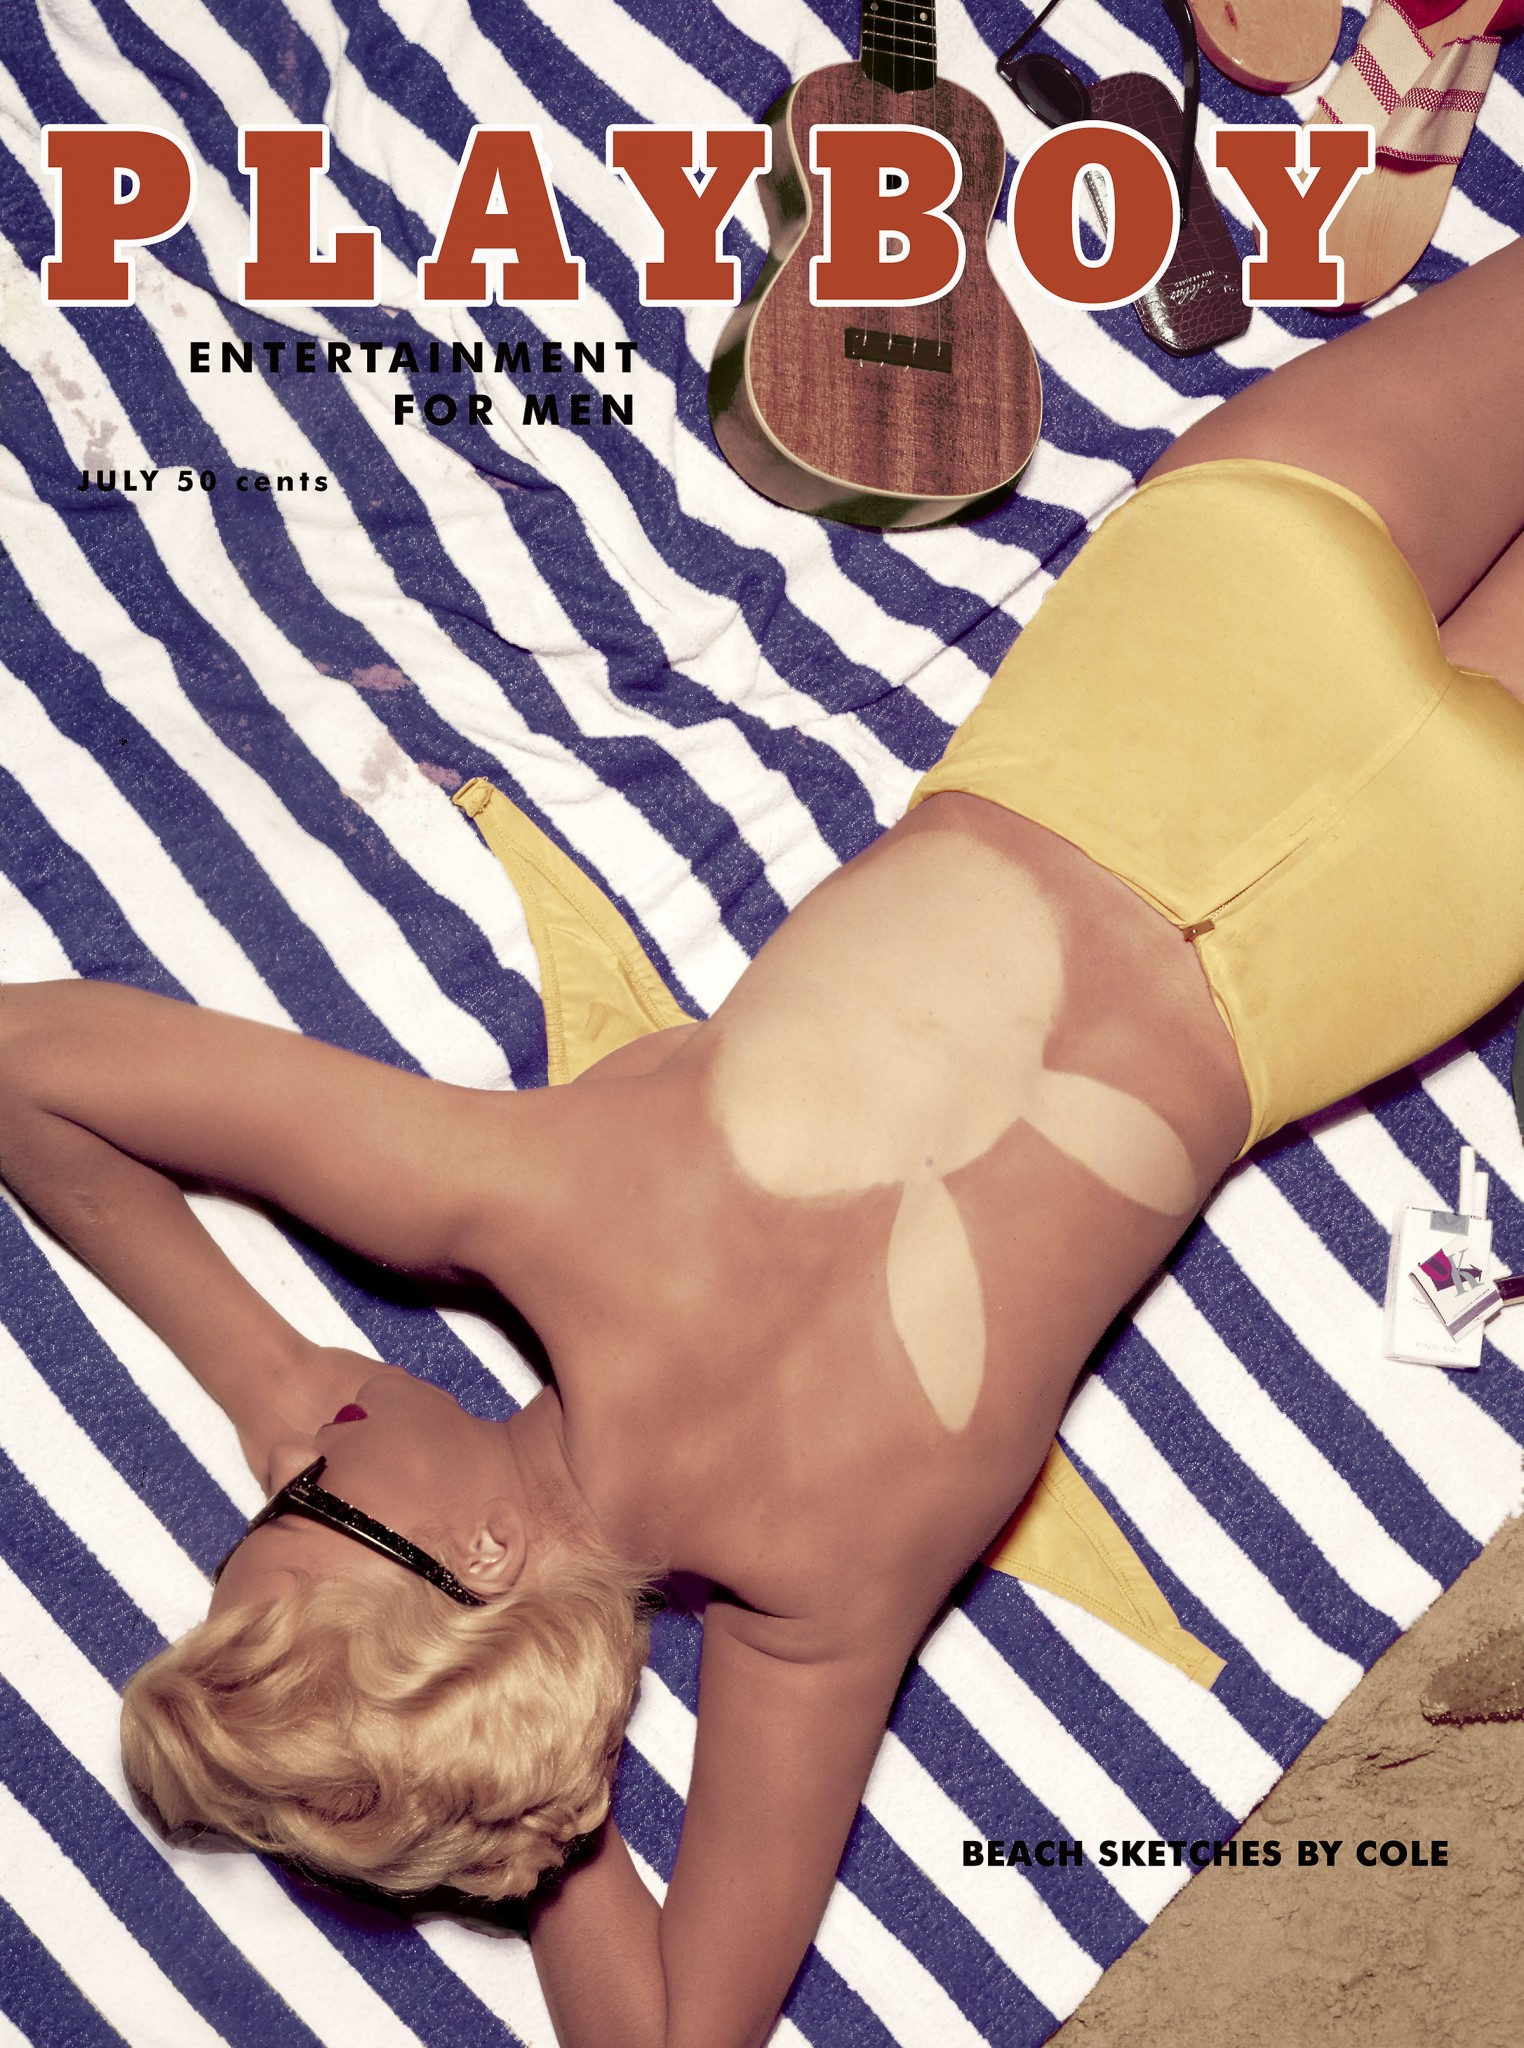 Janet Pilgrim iconic Playboy covers Loaded